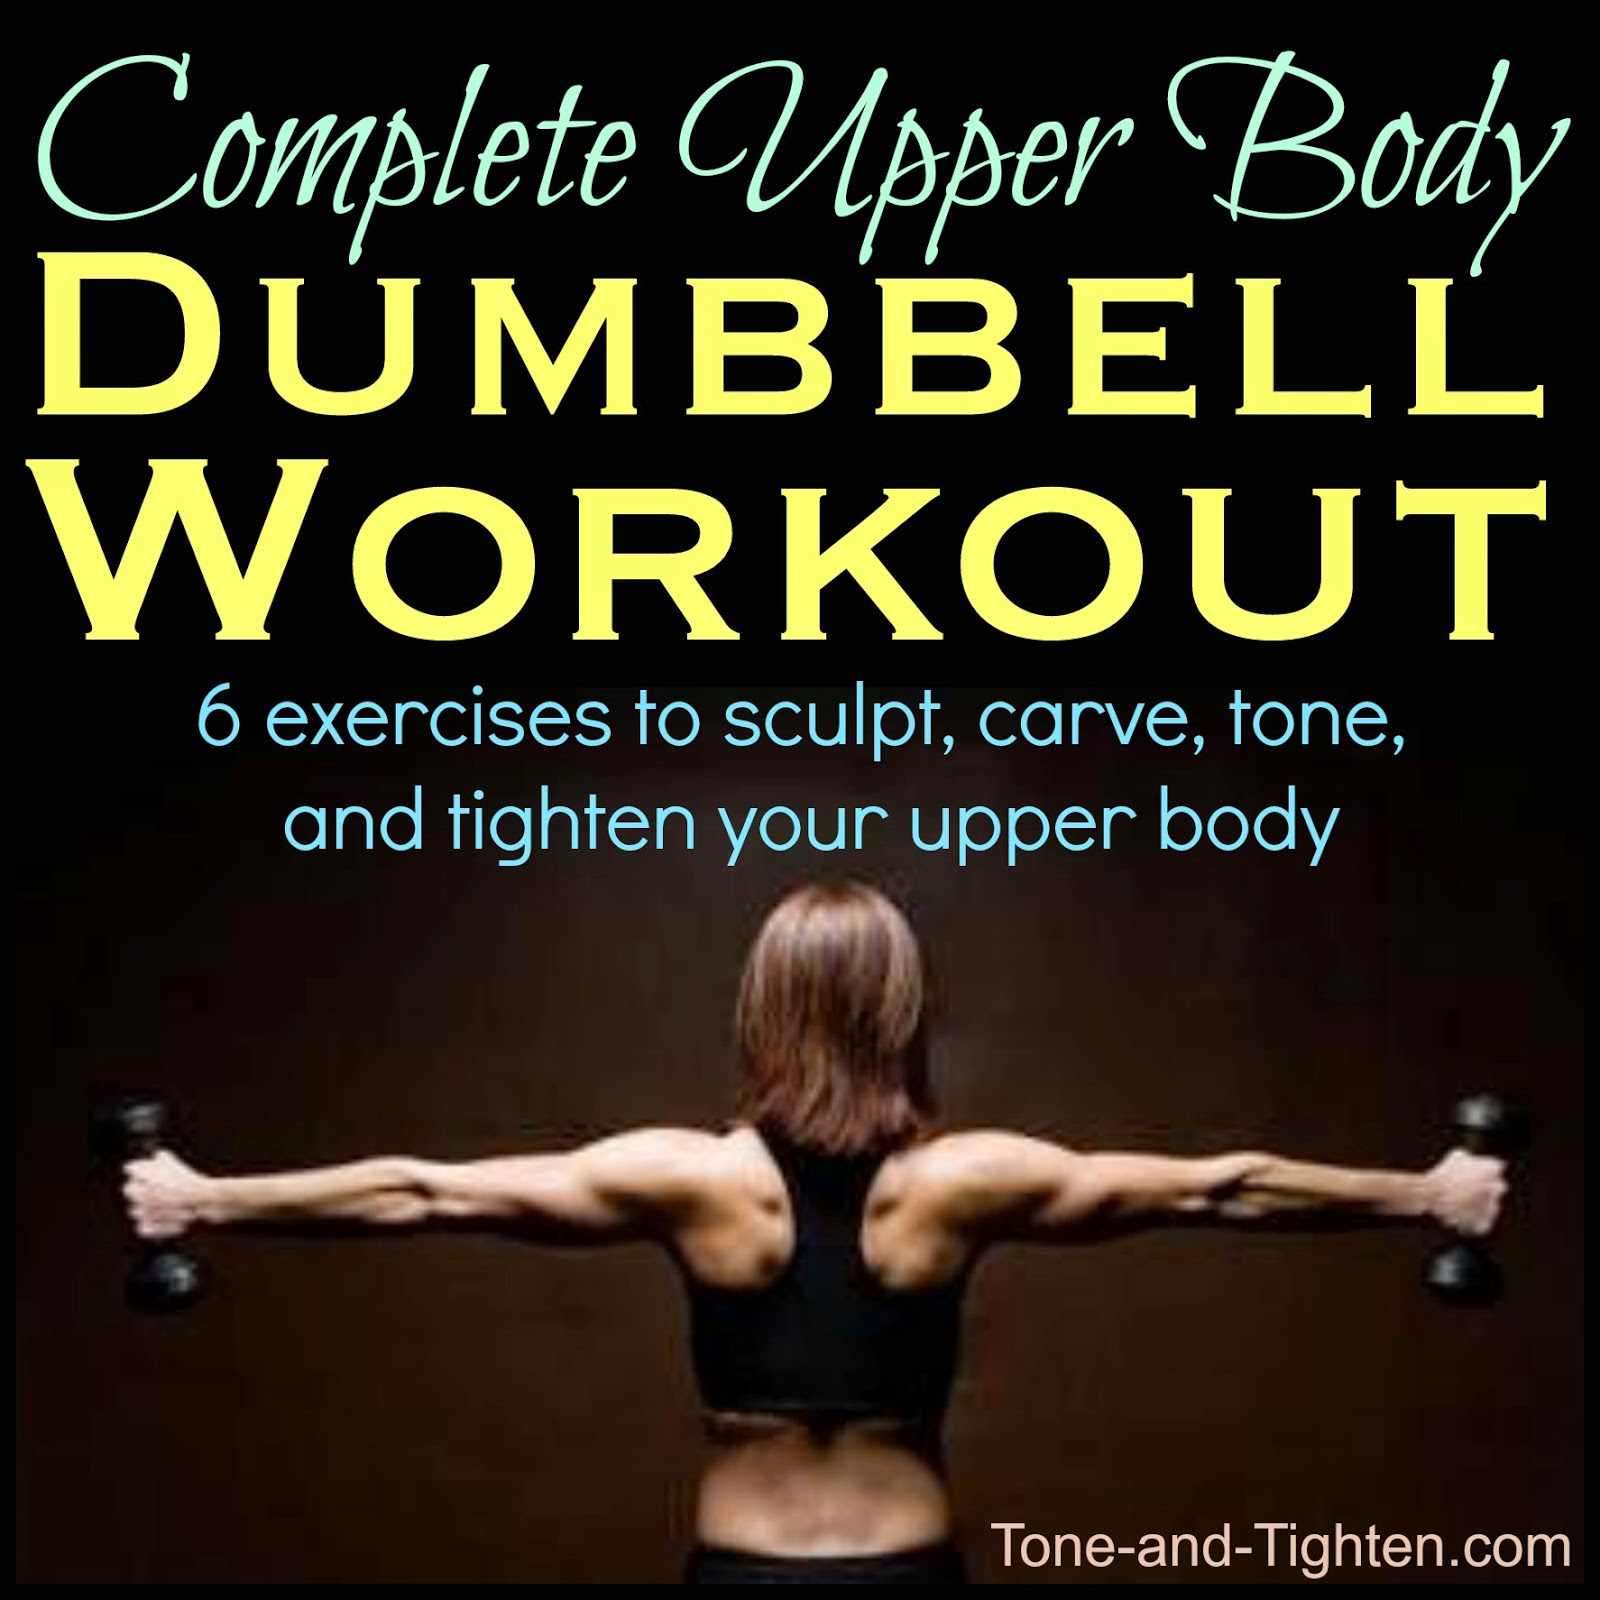 The one dumbbell workout amazing exercises you can do